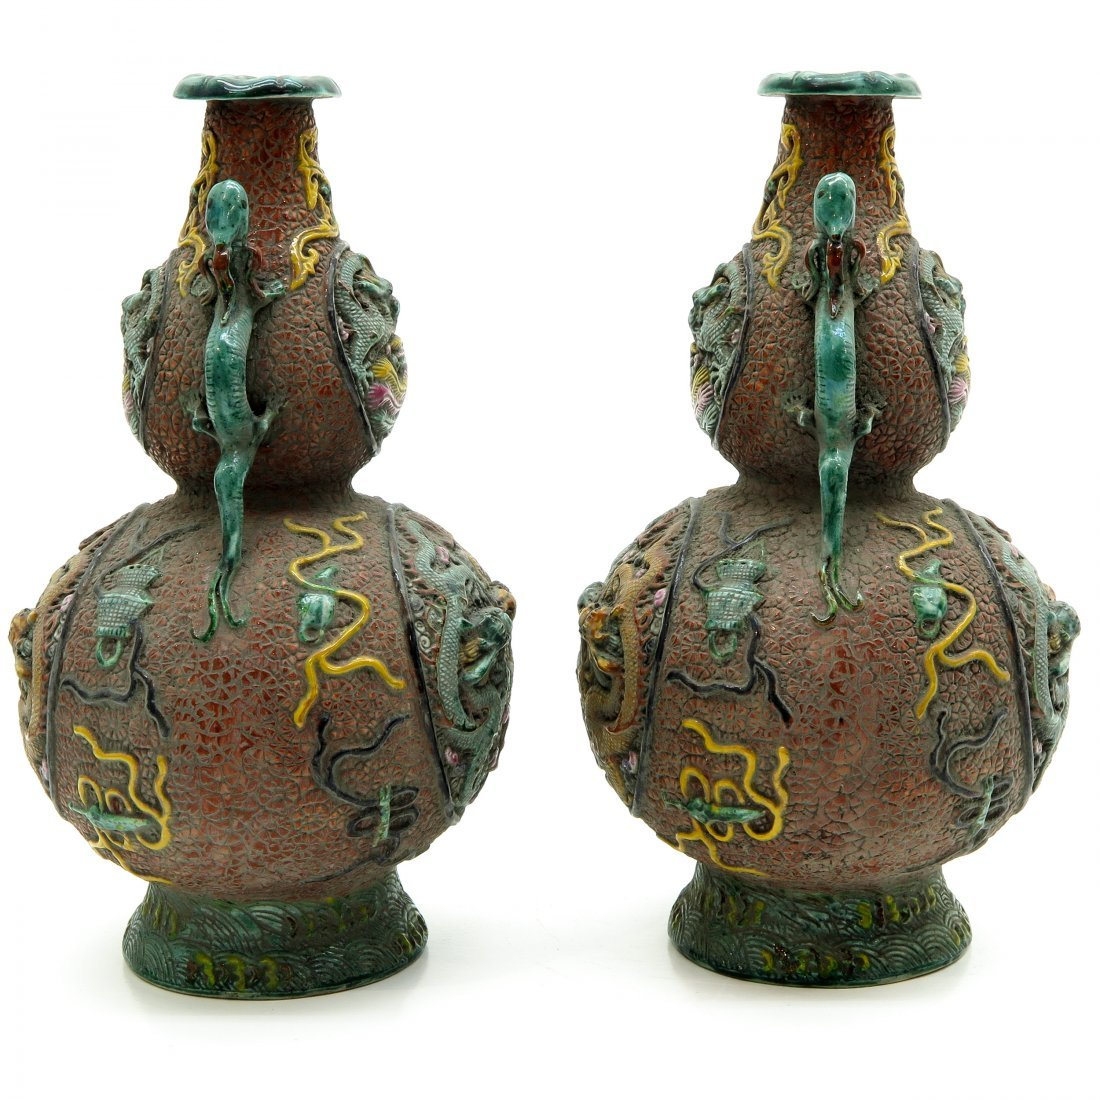 Lot of 19th Century China Porcelain Vases - 2